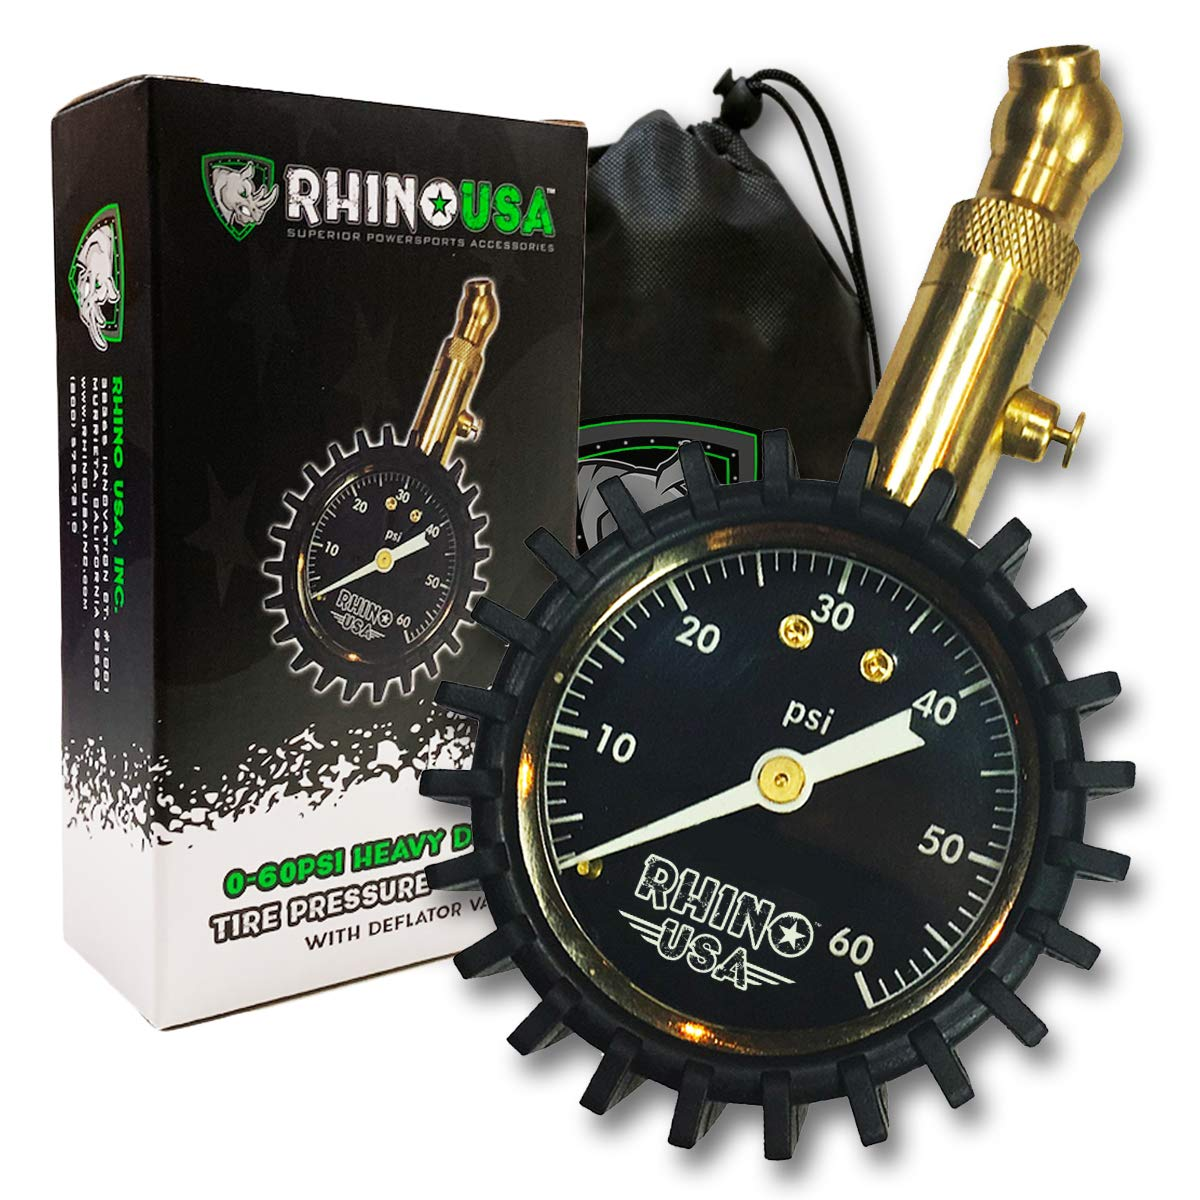 Rhino USA Heavy Duty Tire Pressure Gauge (0-60 PSI) - Certified ANSI B40.1 Accurate, Large 2'' Easy Read Glow Dial, Solid Brass Hardware, Best Any Car, Truck, Motorcycle, RV... by Rhino USA